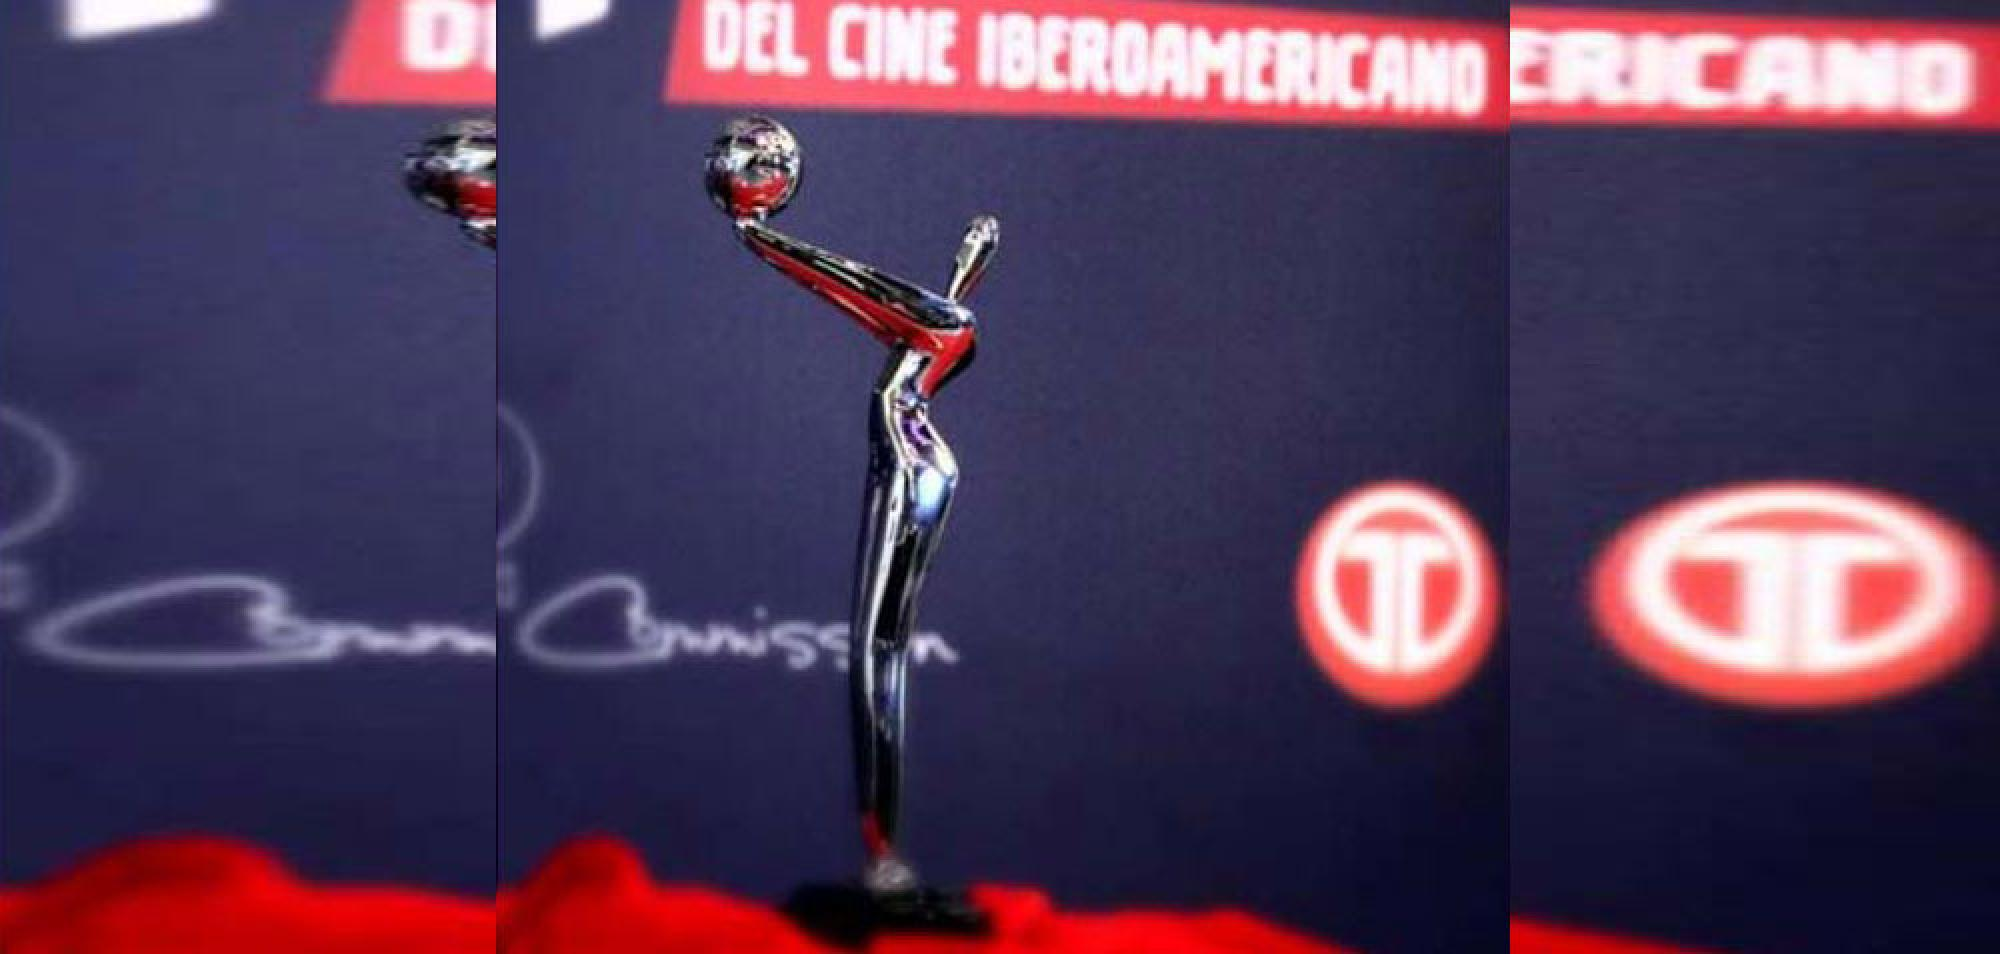 Latin American Film Festival to Receive a Platinum Award